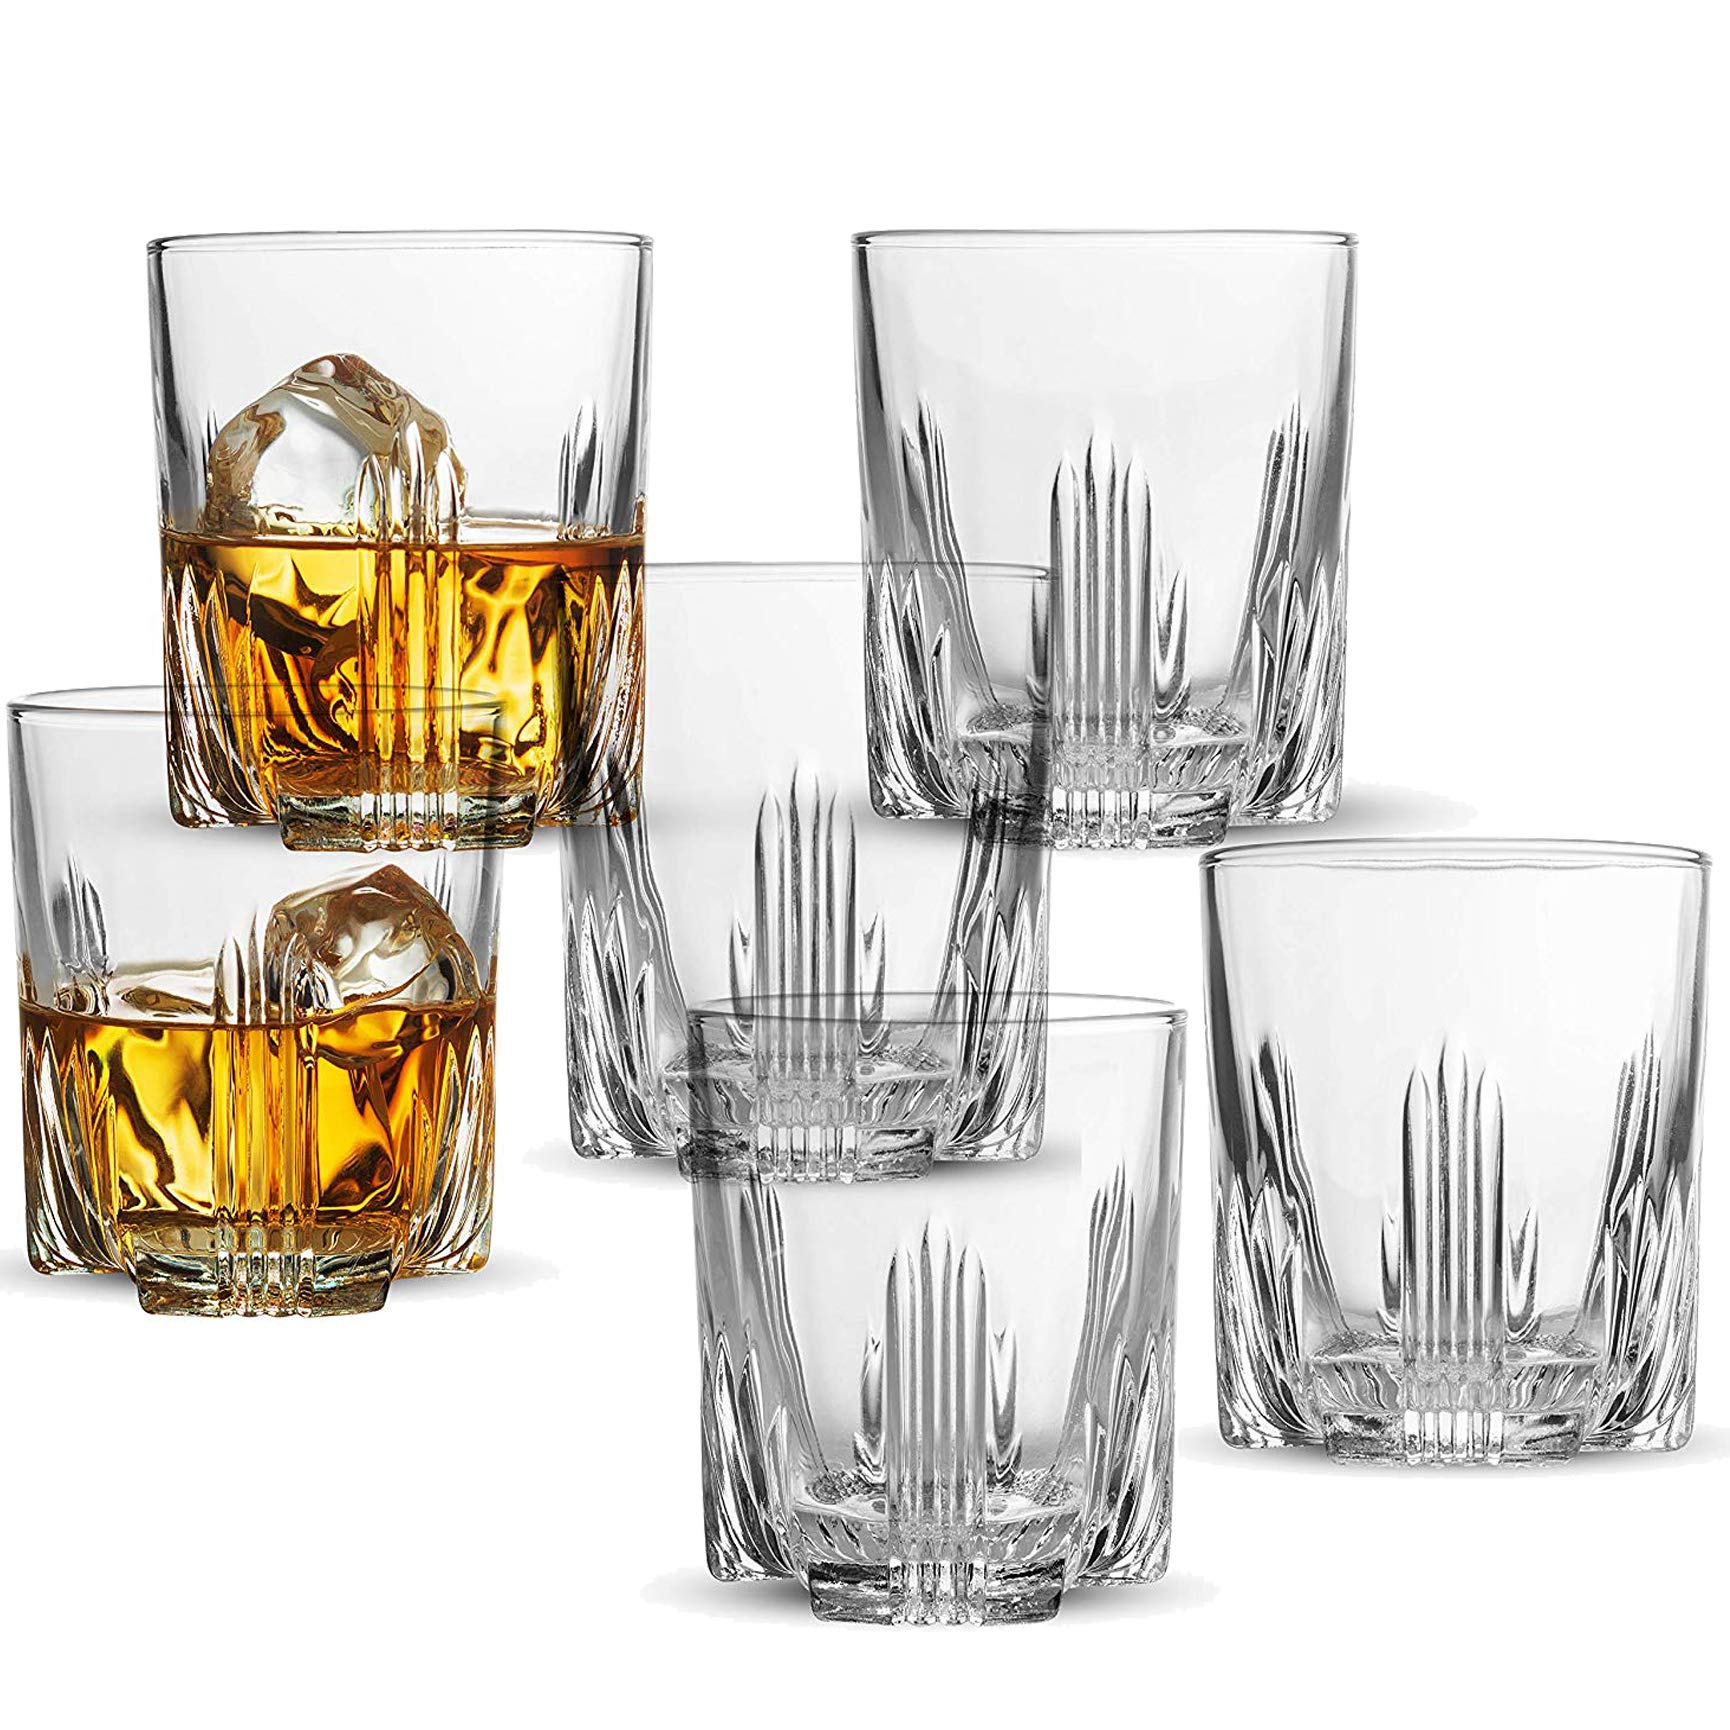 Whiskey Glass Set, Italian Crafted Whiskey Glasses 6 piece Exquisite Cocktail Glasses For Whiskey, Bourbon, Scotch, Cocktails Alcohol, Etc. | 9.5 Oz. Drinking Glasses (6 Whiskey Glasses)